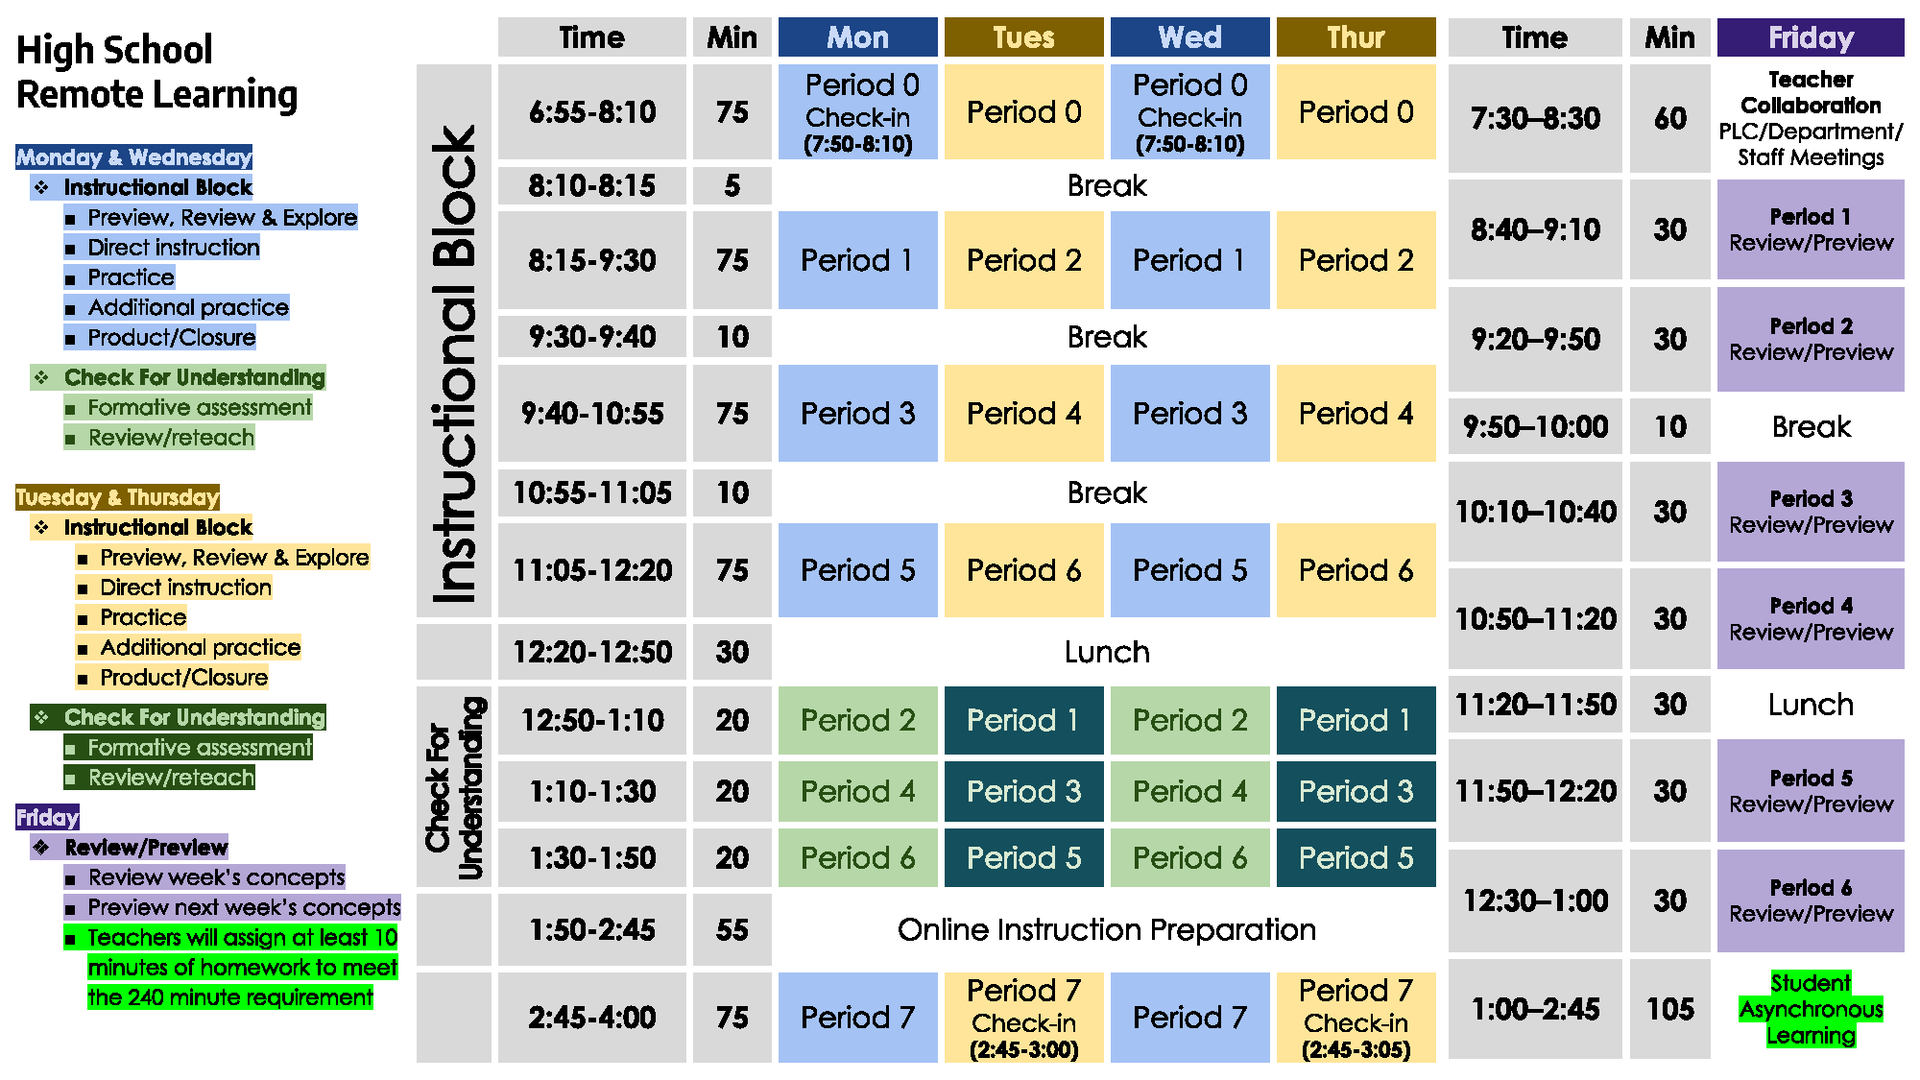 High school remote learning bell schedule.